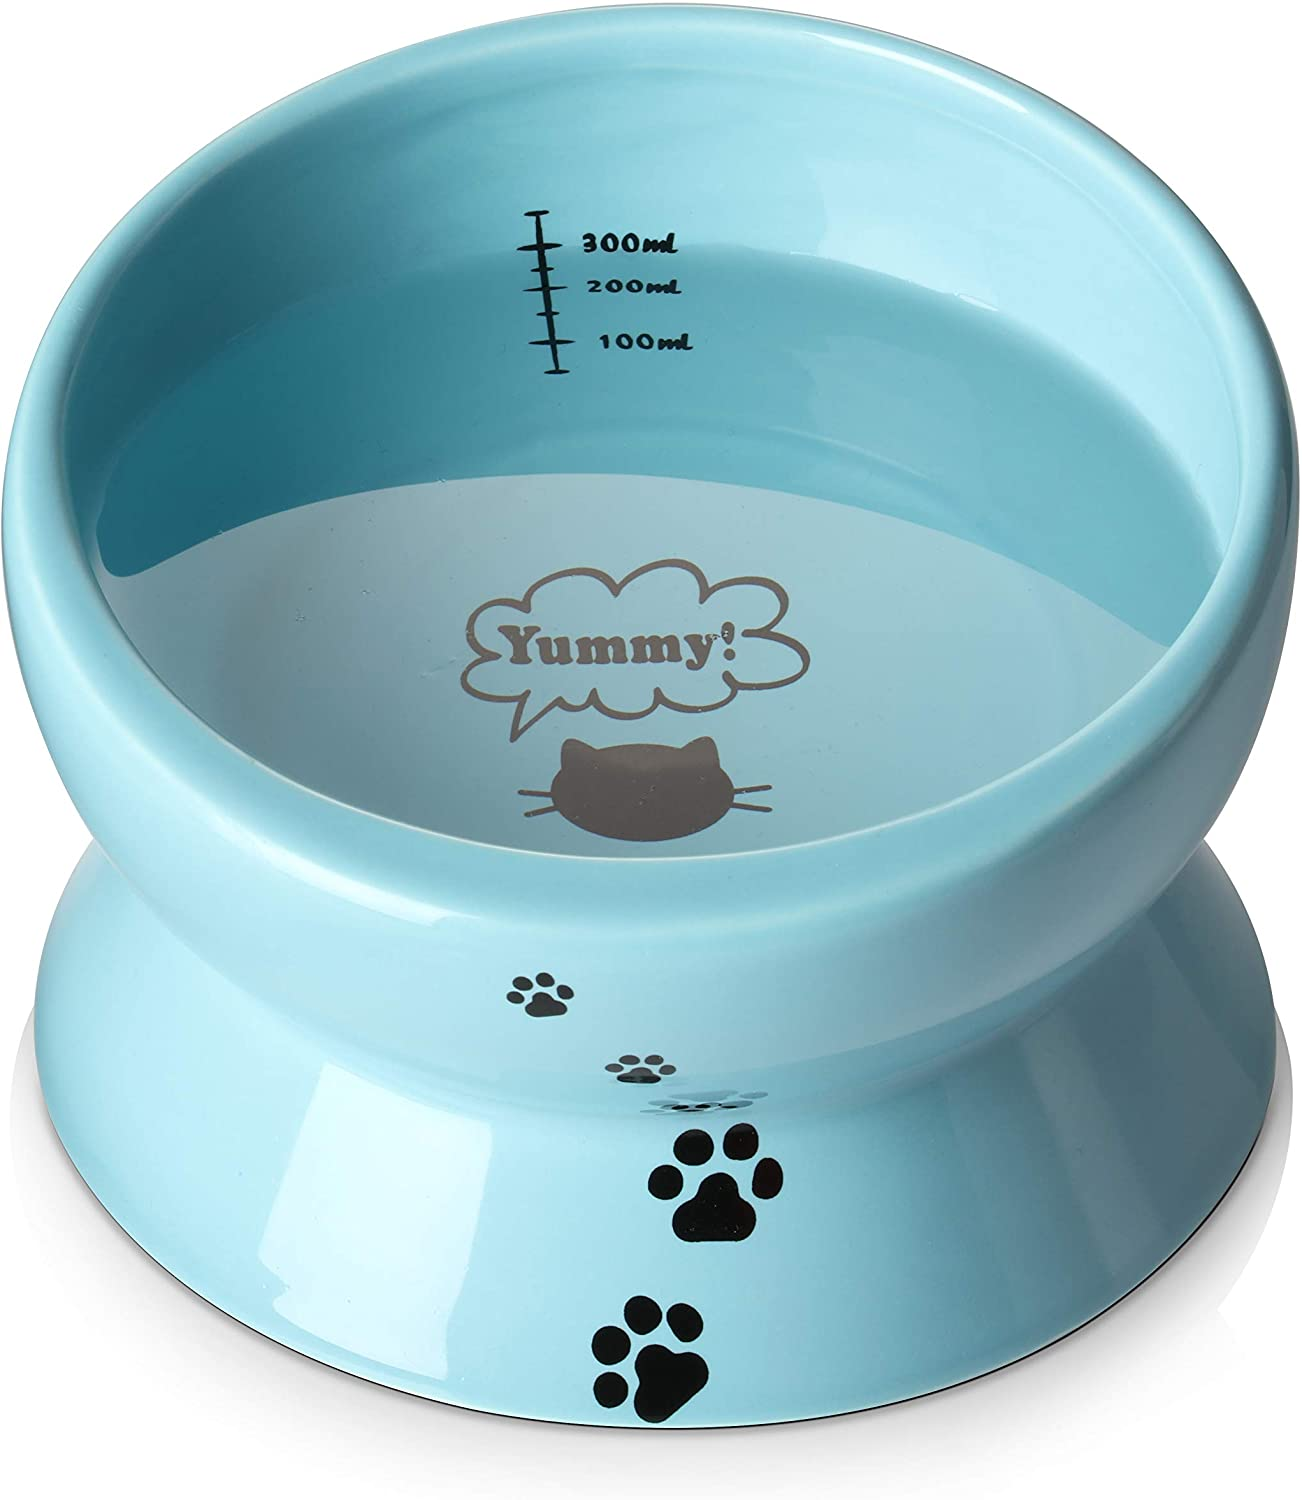 Y YHY Ceramic Raised Cat Food Water Bowl, 15 Ounce Slanted Cat Bowl, Tilt Angle Protect Cat's Spine, Stress Free, Backflow Prevention, Gift for Cat, Cat Dish, Lake Blue